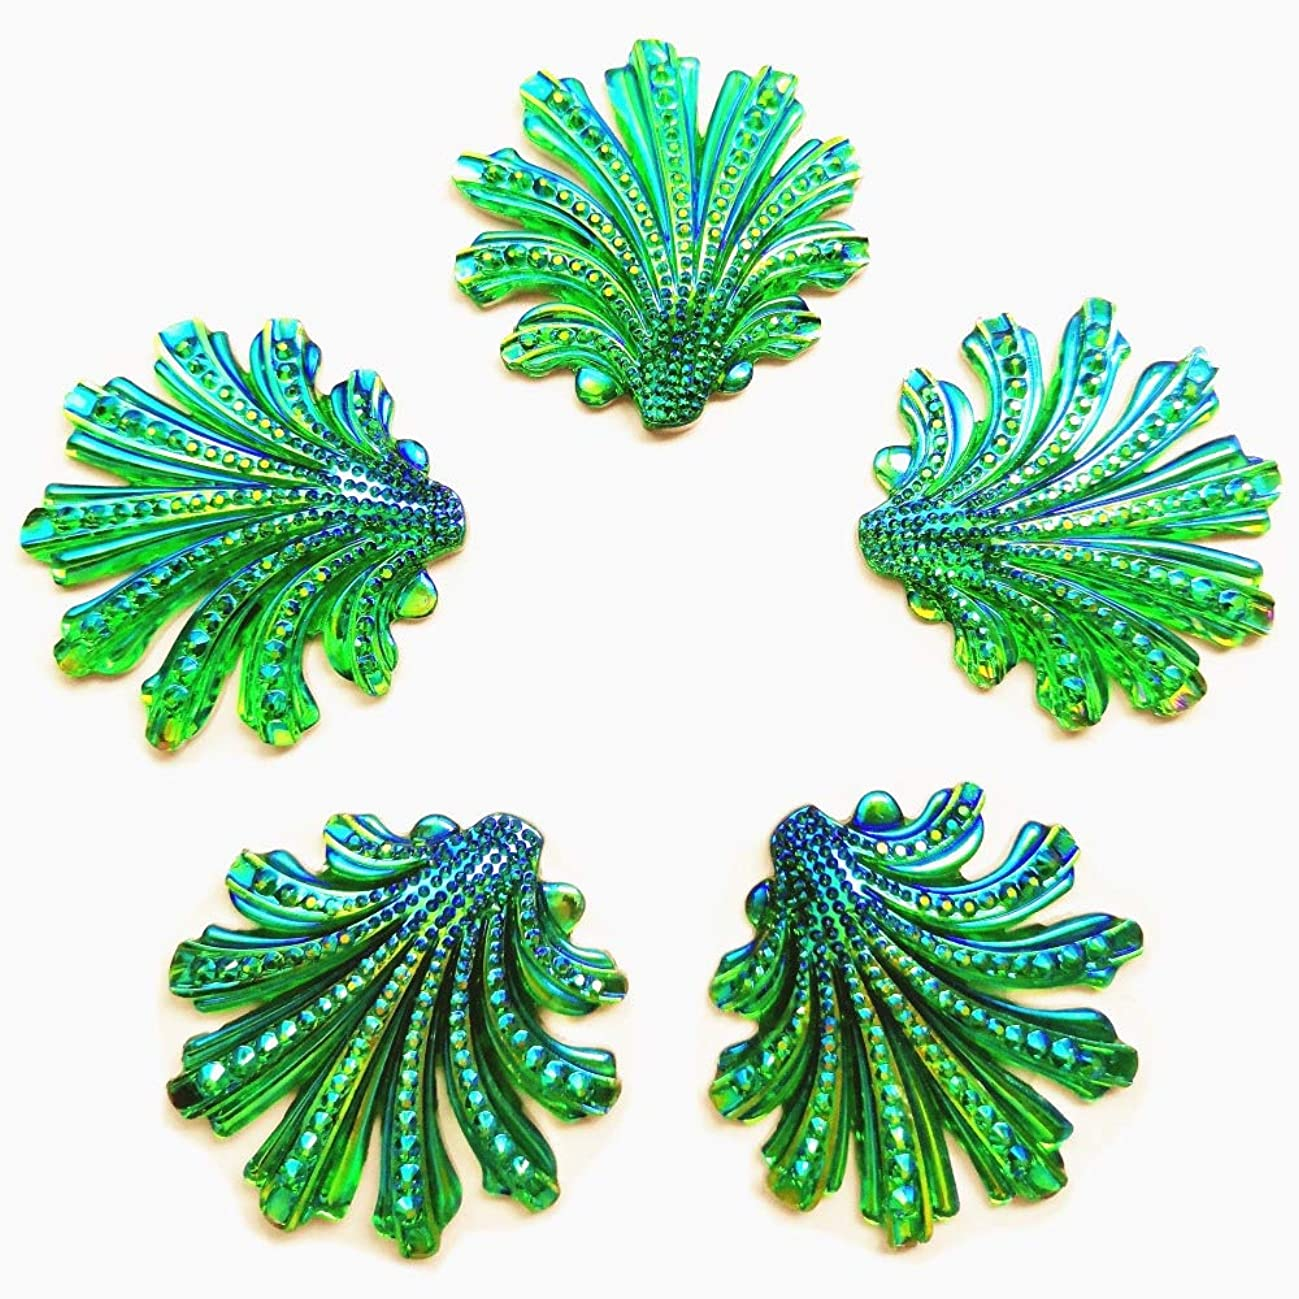 15 inch Sparkly Buttons Big Leaf Shape AB Color Sew On Crafts Rhinestones Flatback Beads Sewing for Costume Wedding Dress Decorations 15pcs Homemade DIY Projec (Green)